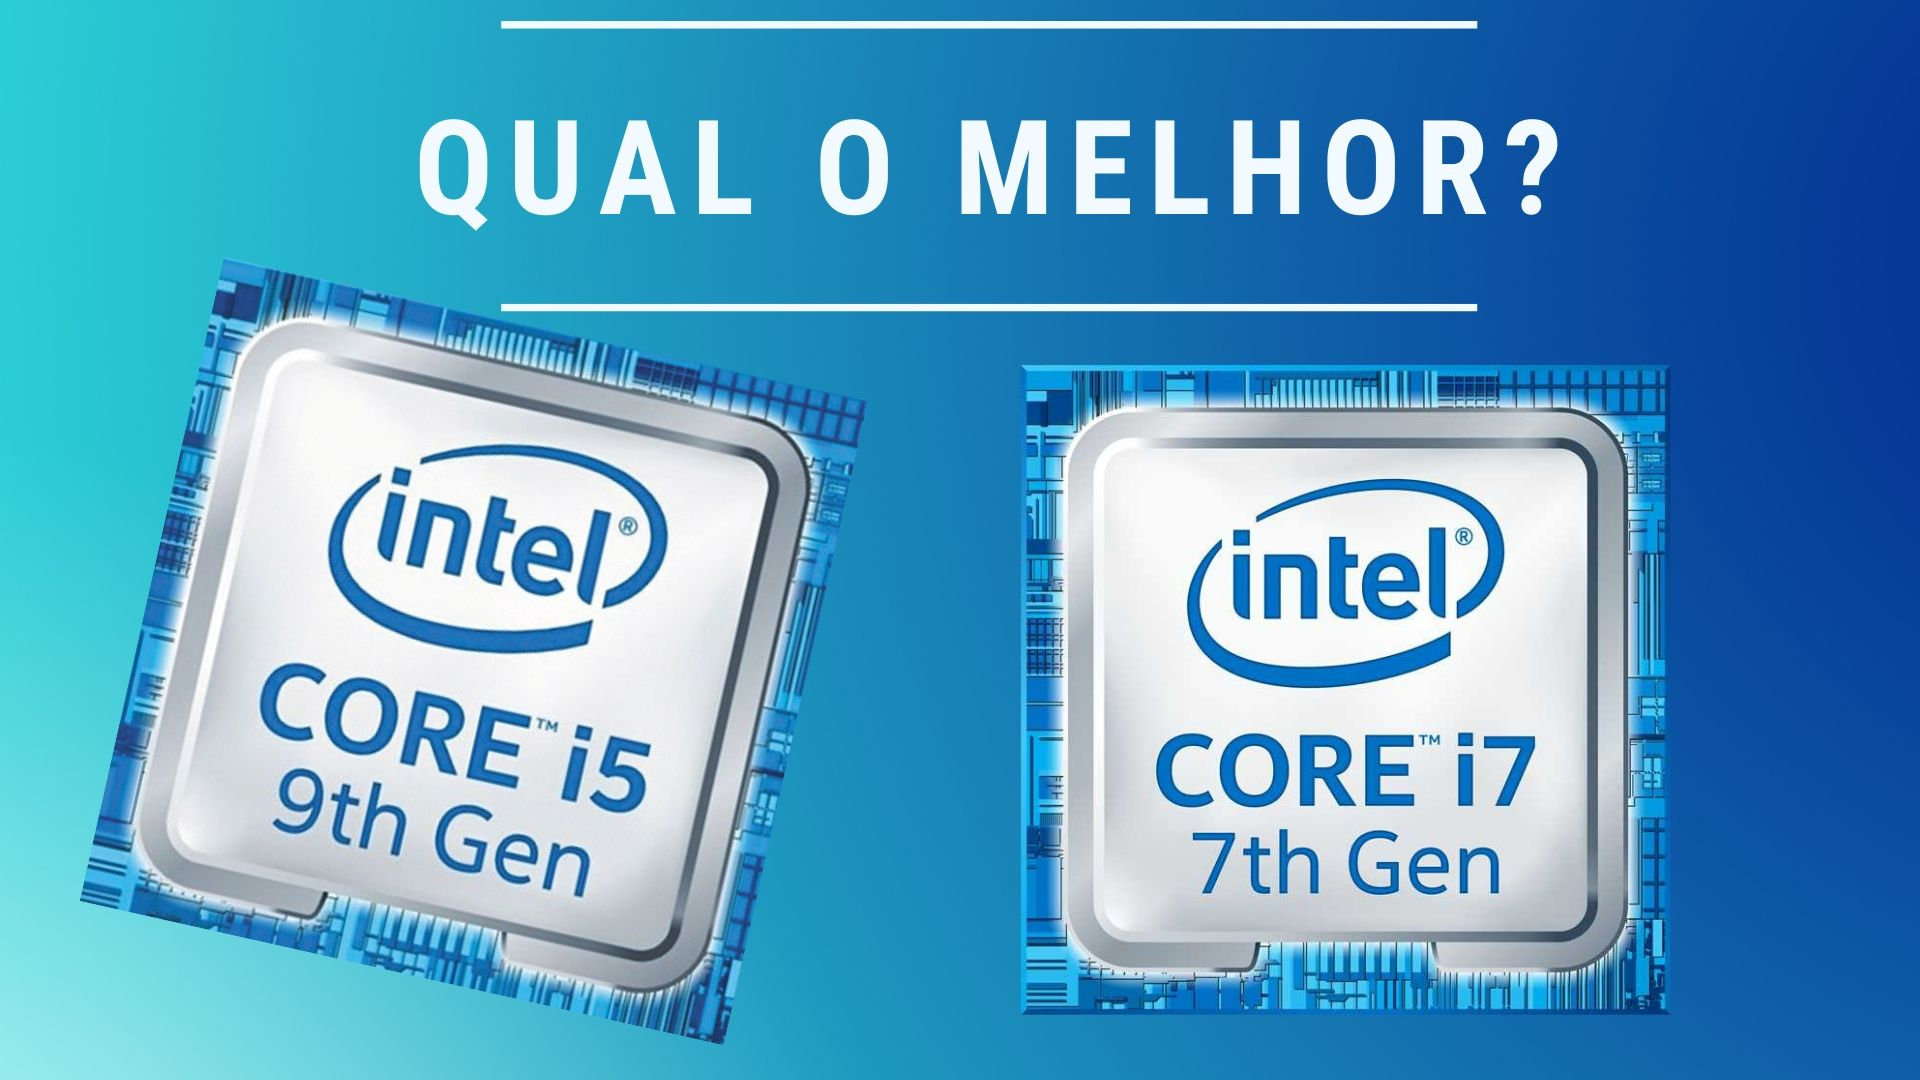 Intel Core i5 9300H vs i7 7700HQ